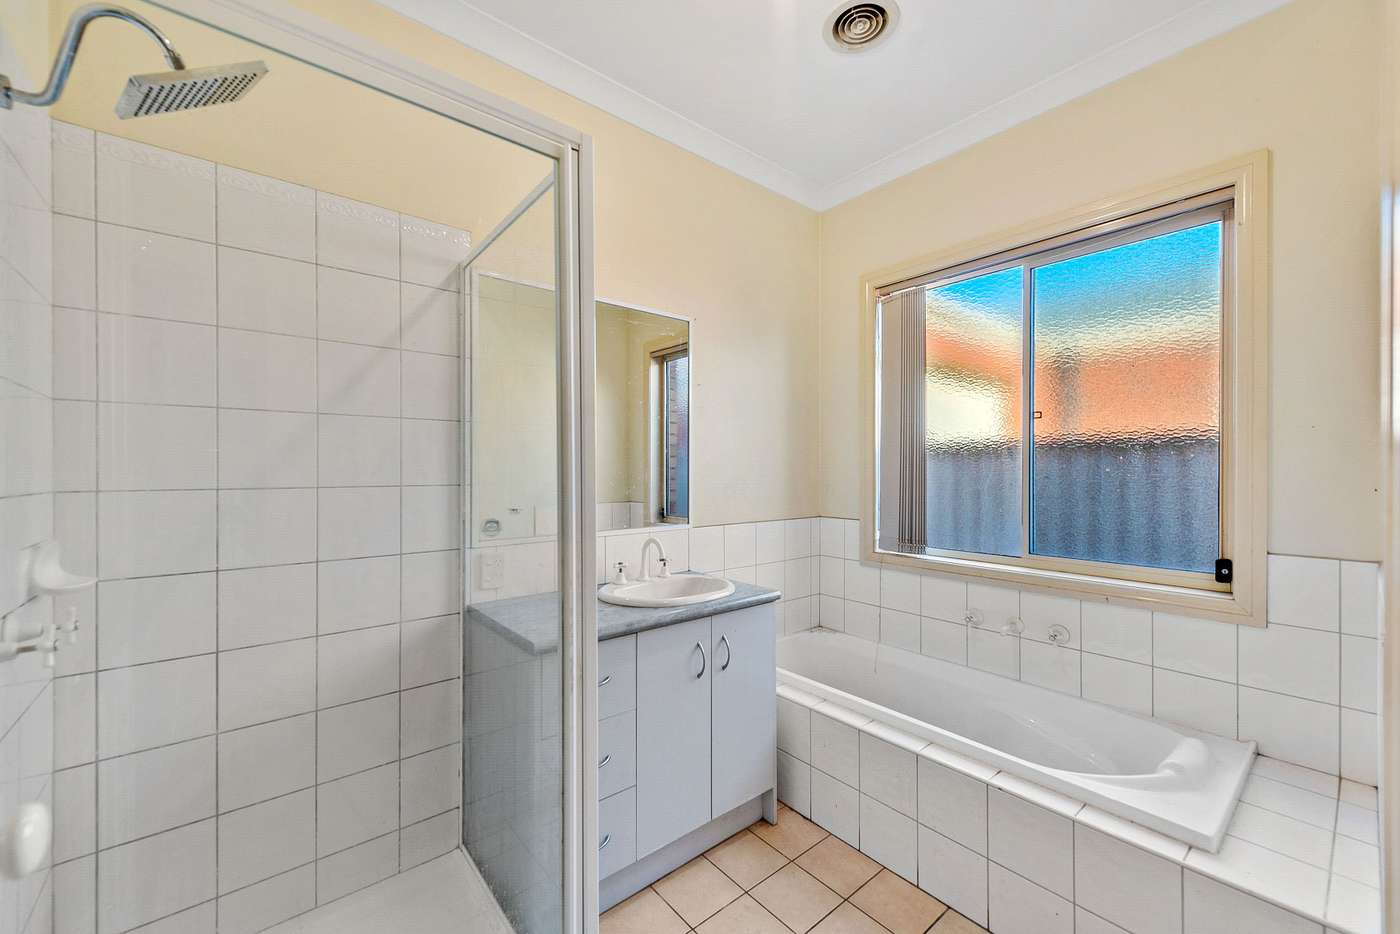 Seventh view of Homely house listing, 14 Hinchinbrook Close, Caroline Springs VIC 3023